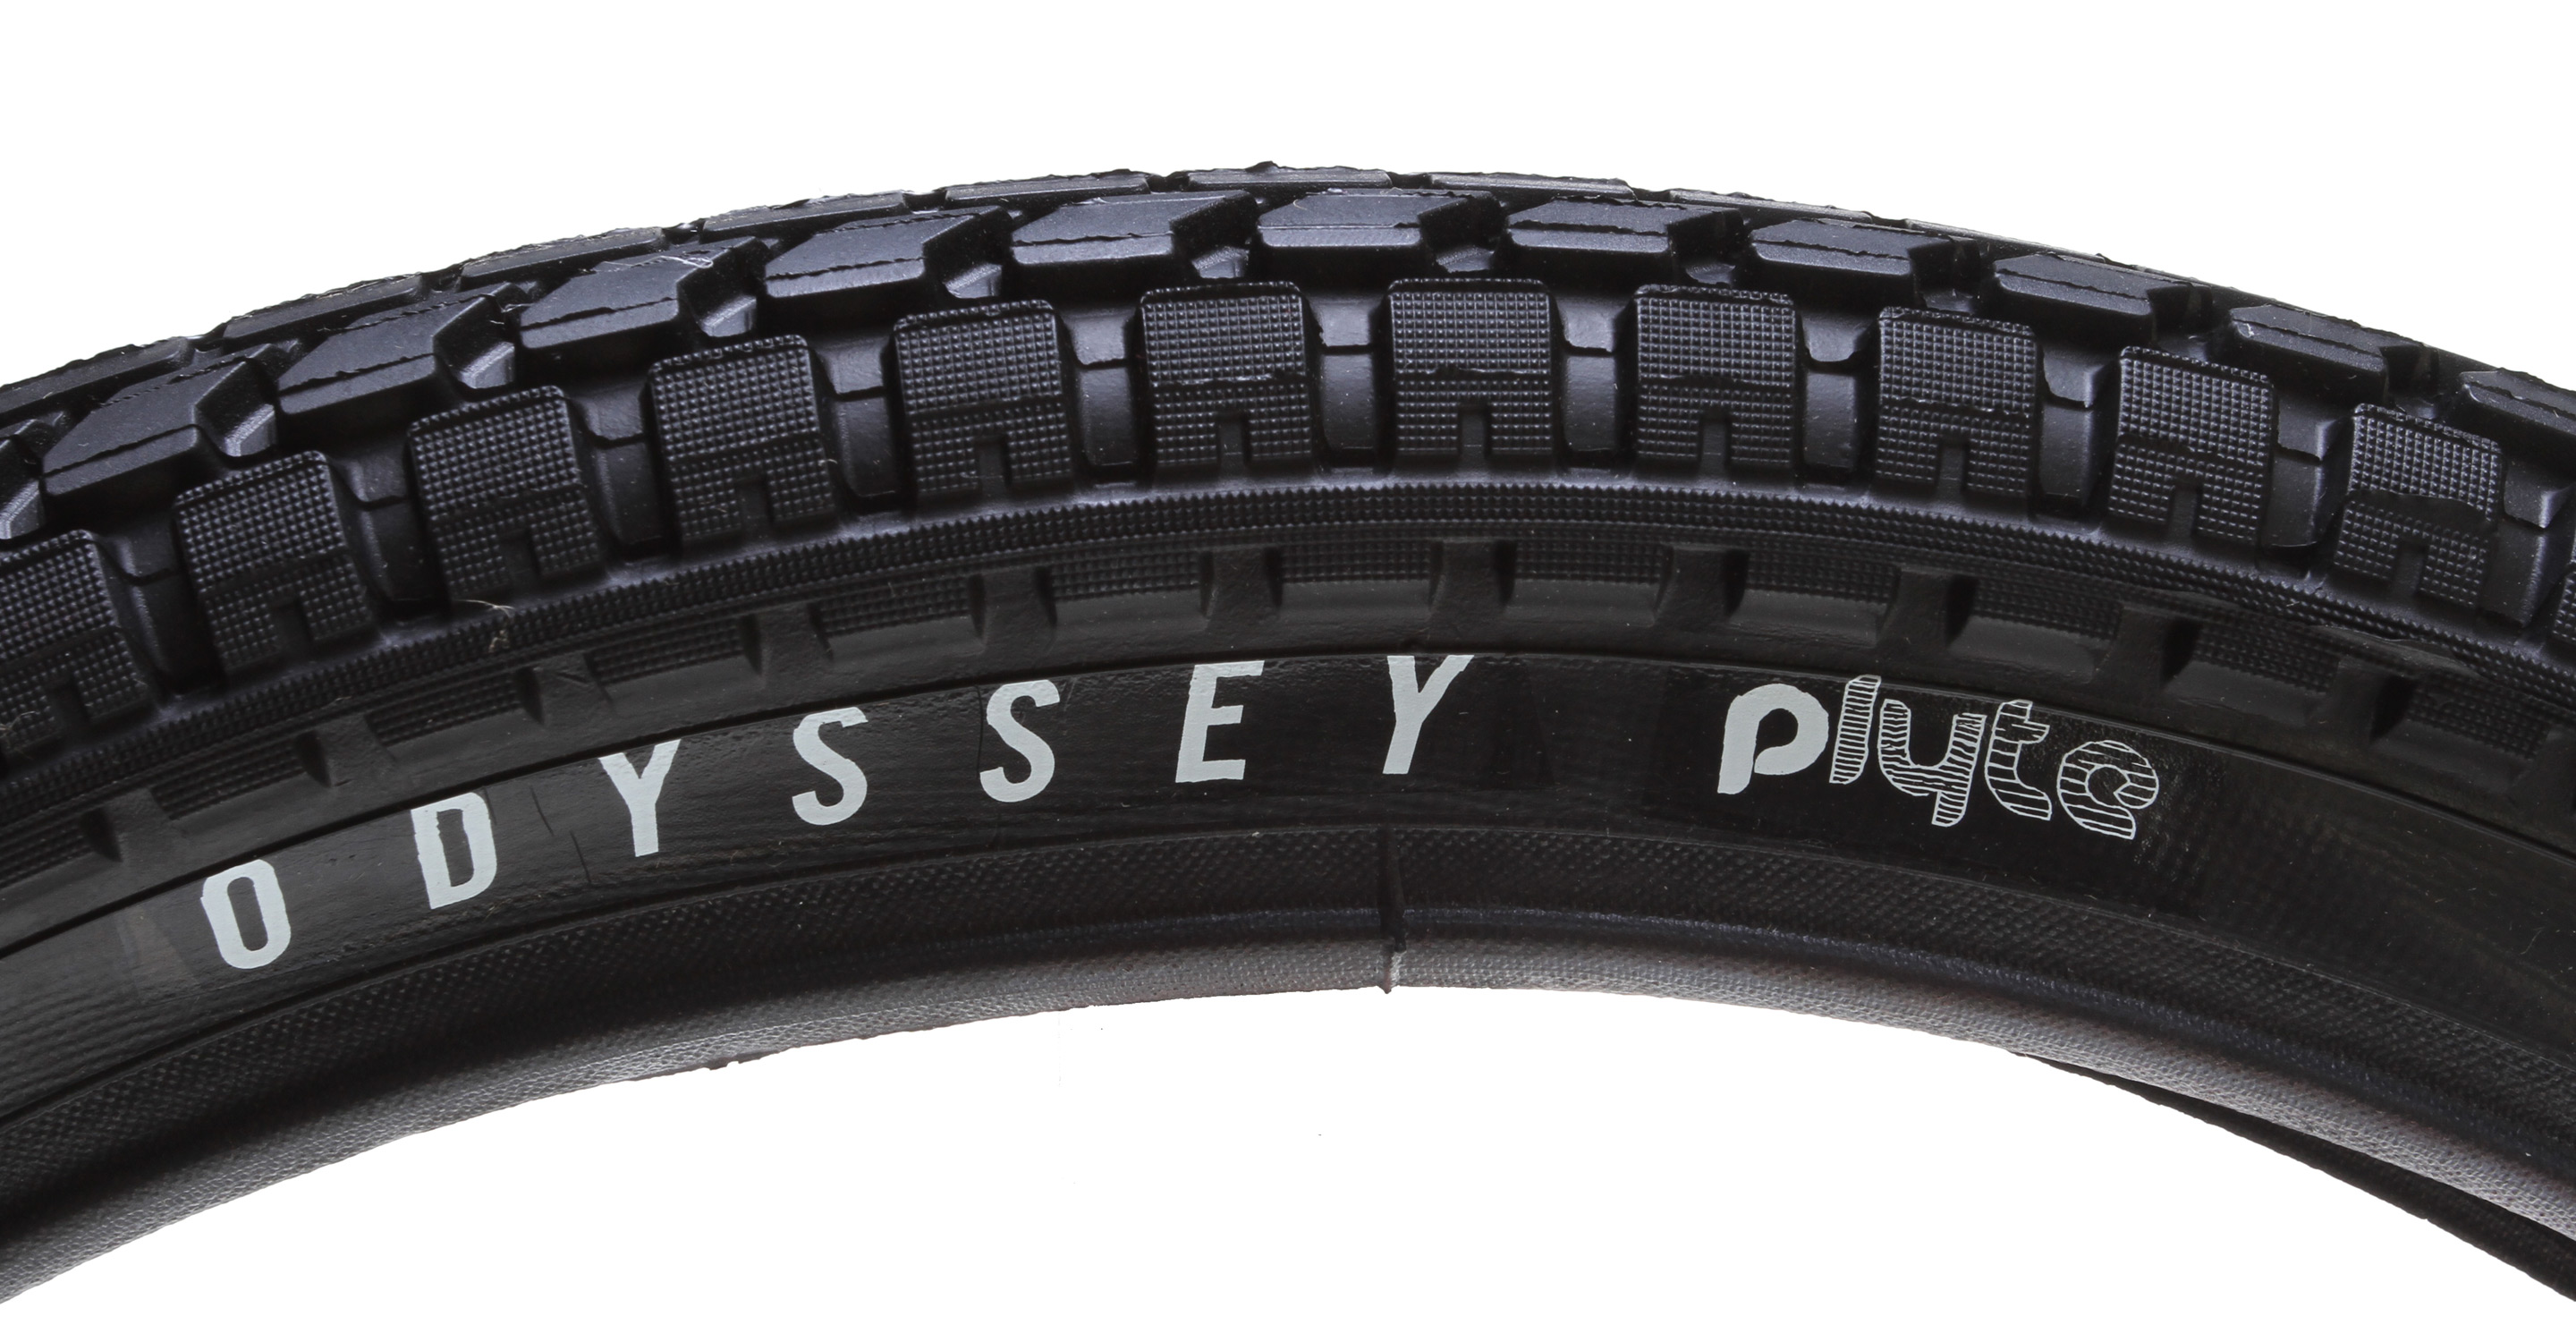 "BMX Odyssey Dirt Path tires feature the design of the Path, only with a dirt specific tread. Specific sidewalls reduce weight while increasing strength.Key Features of the Odyssey Dirt Path P-Lyte BMX Tire 20 X 2.2"": Standard steel bead with lighter weight P-Lyte casing Intended Use: BMX Defined Color: Black Color Tread/Side: Black/Black Tire Type: Clincher Tire Diameter: 20"" Labeled Width: 2.2 ISO Width: 55 mm ISO Diameter: 406 / 20"" BMX Tire Bead: Steel PSI: 90 PSI Wght/Dims: 1.61 lbs. 20 x 20 x 1.5 - $29.95"